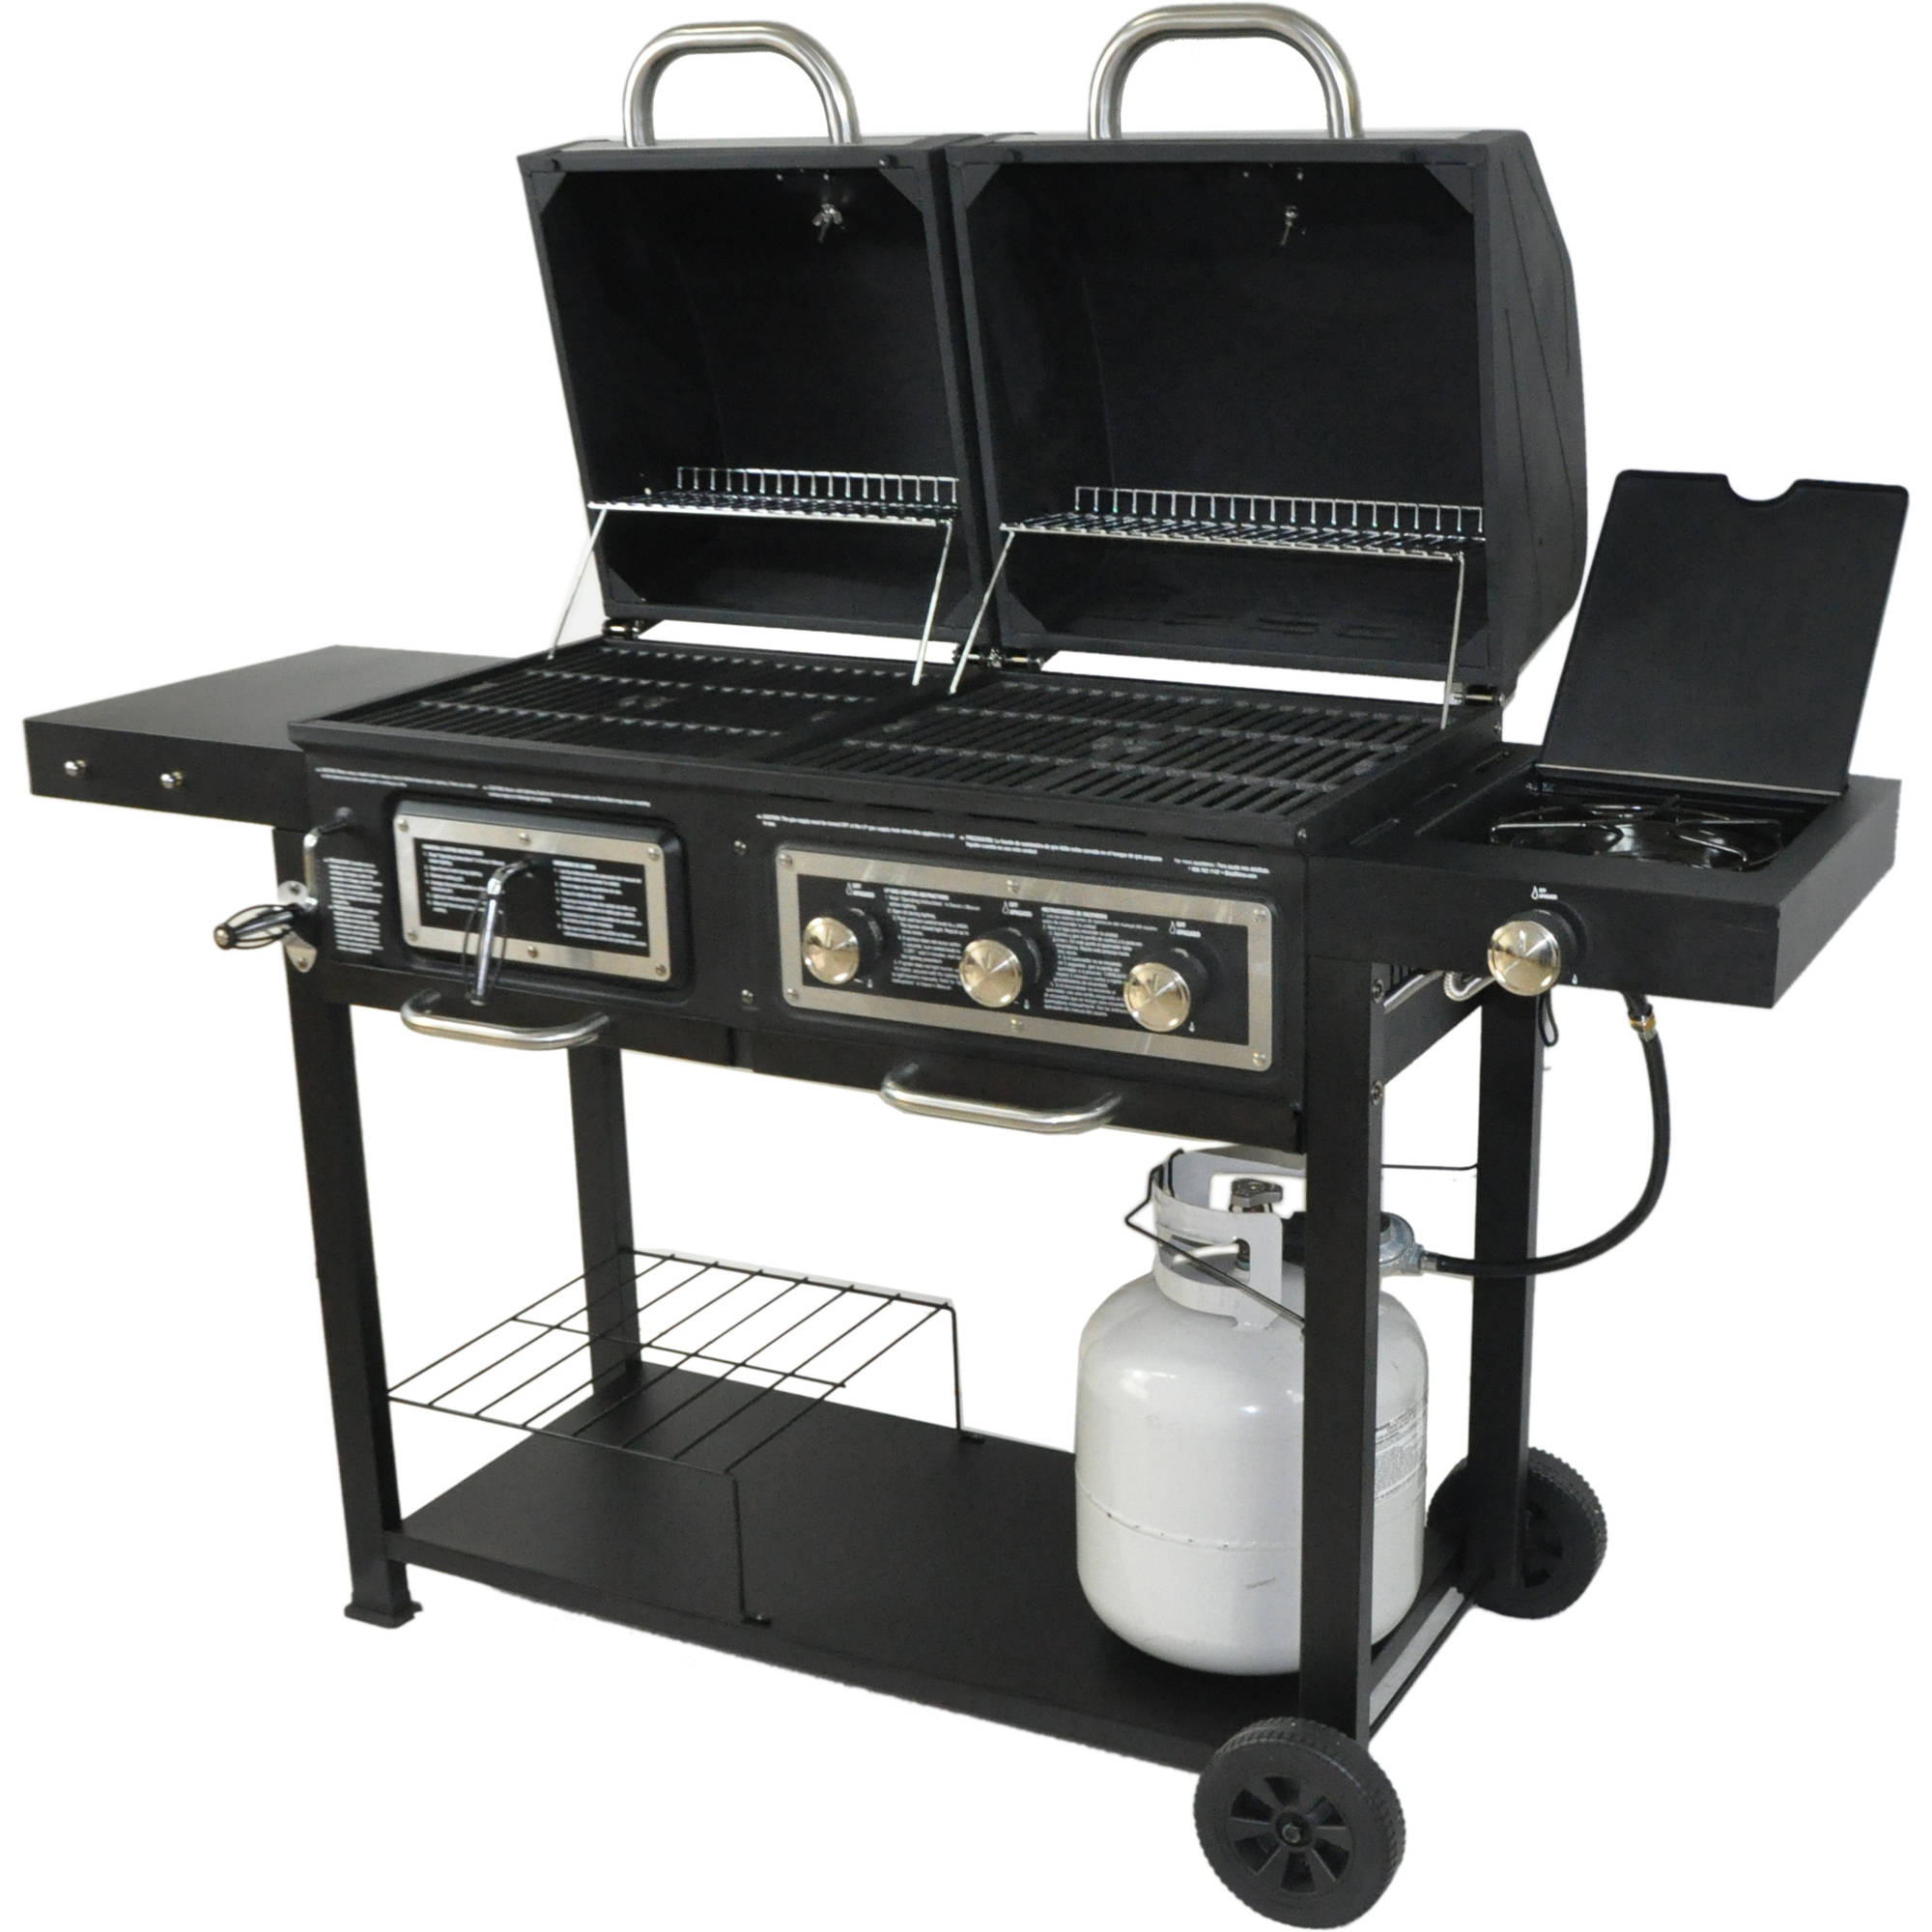 dual fuel grill barbecue outdoor patio gas charcoal. Black Bedroom Furniture Sets. Home Design Ideas